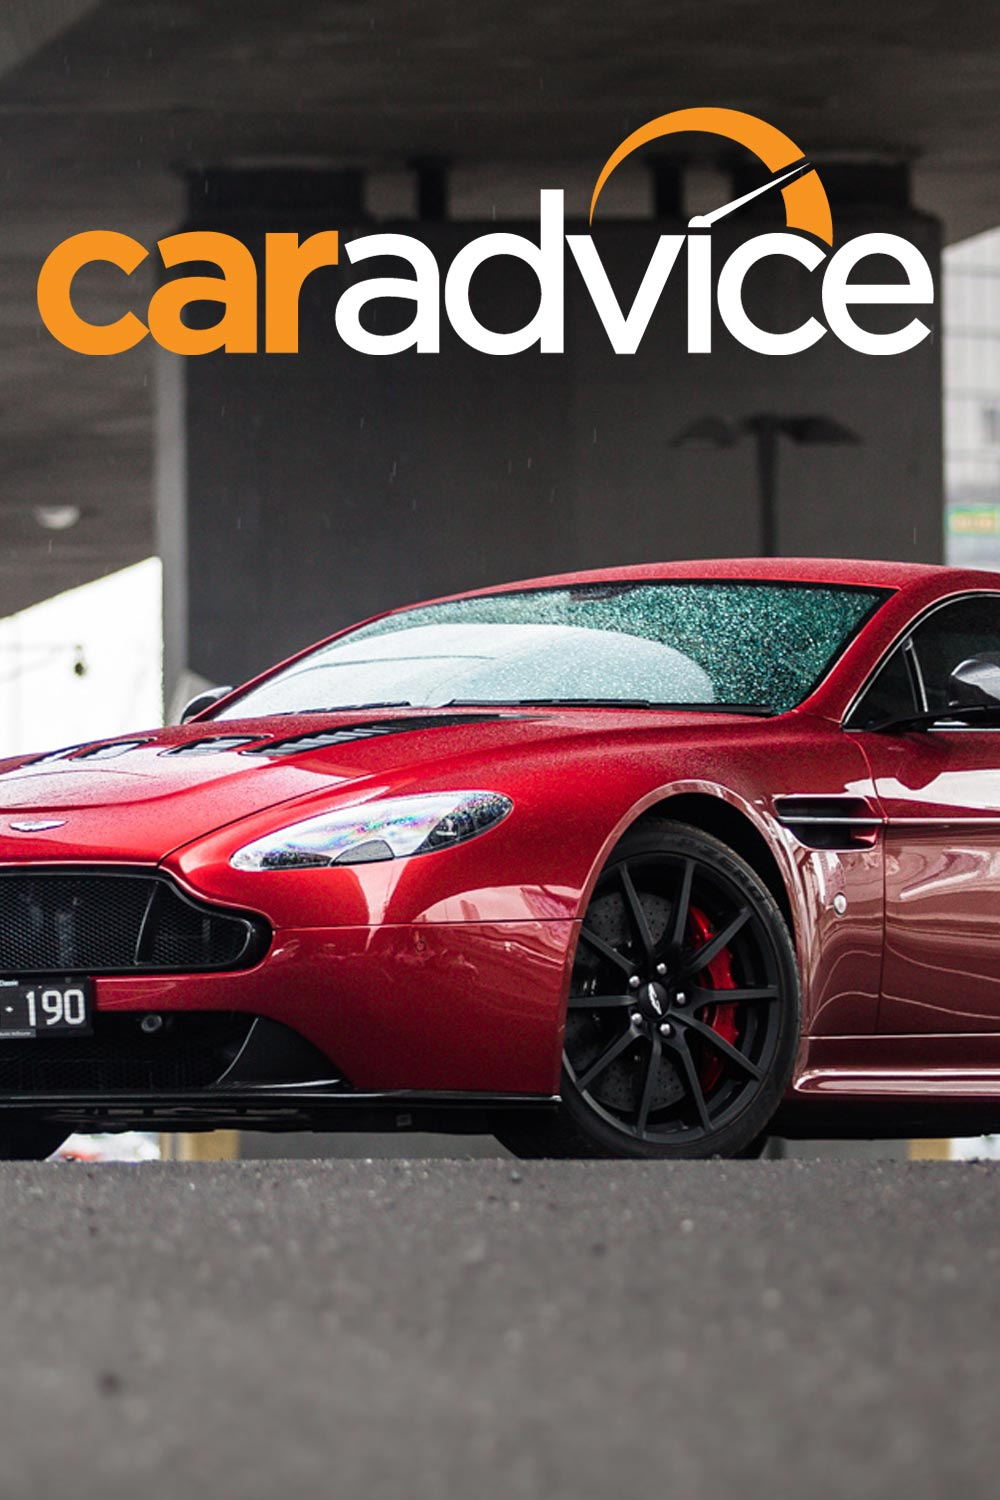 CarAdvice    YouTube is an integral component to CarAdvice.com.au's brand awareness and I've developed content strategy,SEO, and new production approaches to better leverage their video assets across channels.    VIEW PROJECT